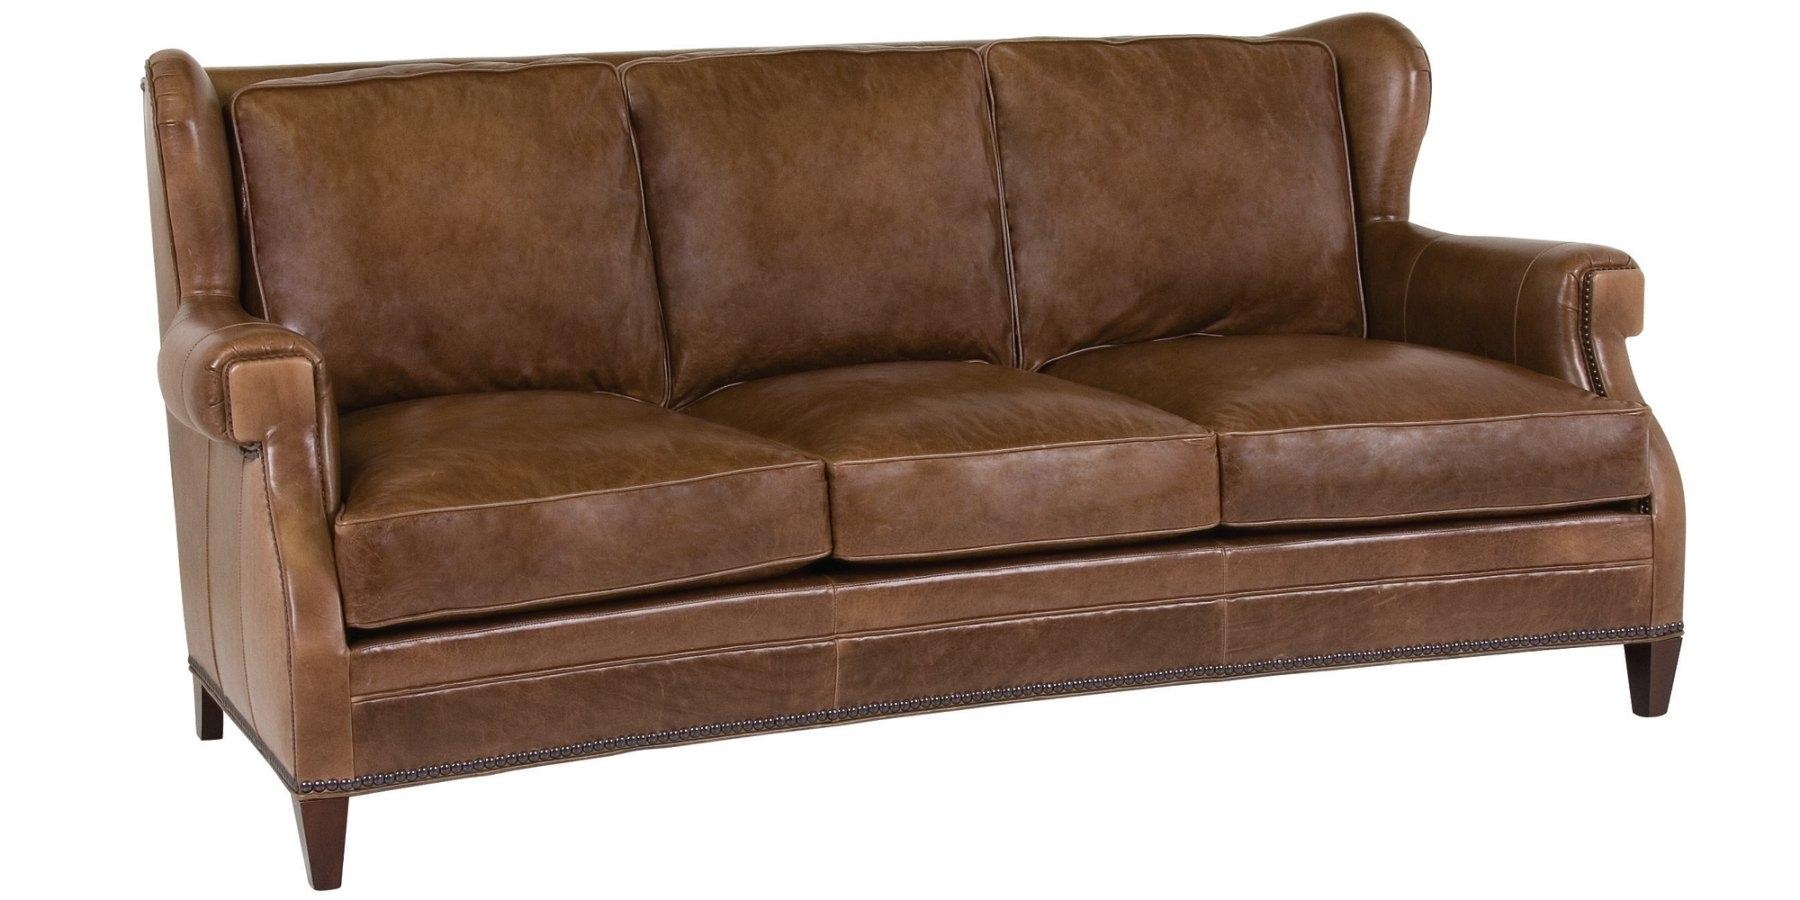 20 Choices Of Brown Leather Sofas With Nailhead Trim Sofa Ideas ~ Leather Sofa With Nailheads